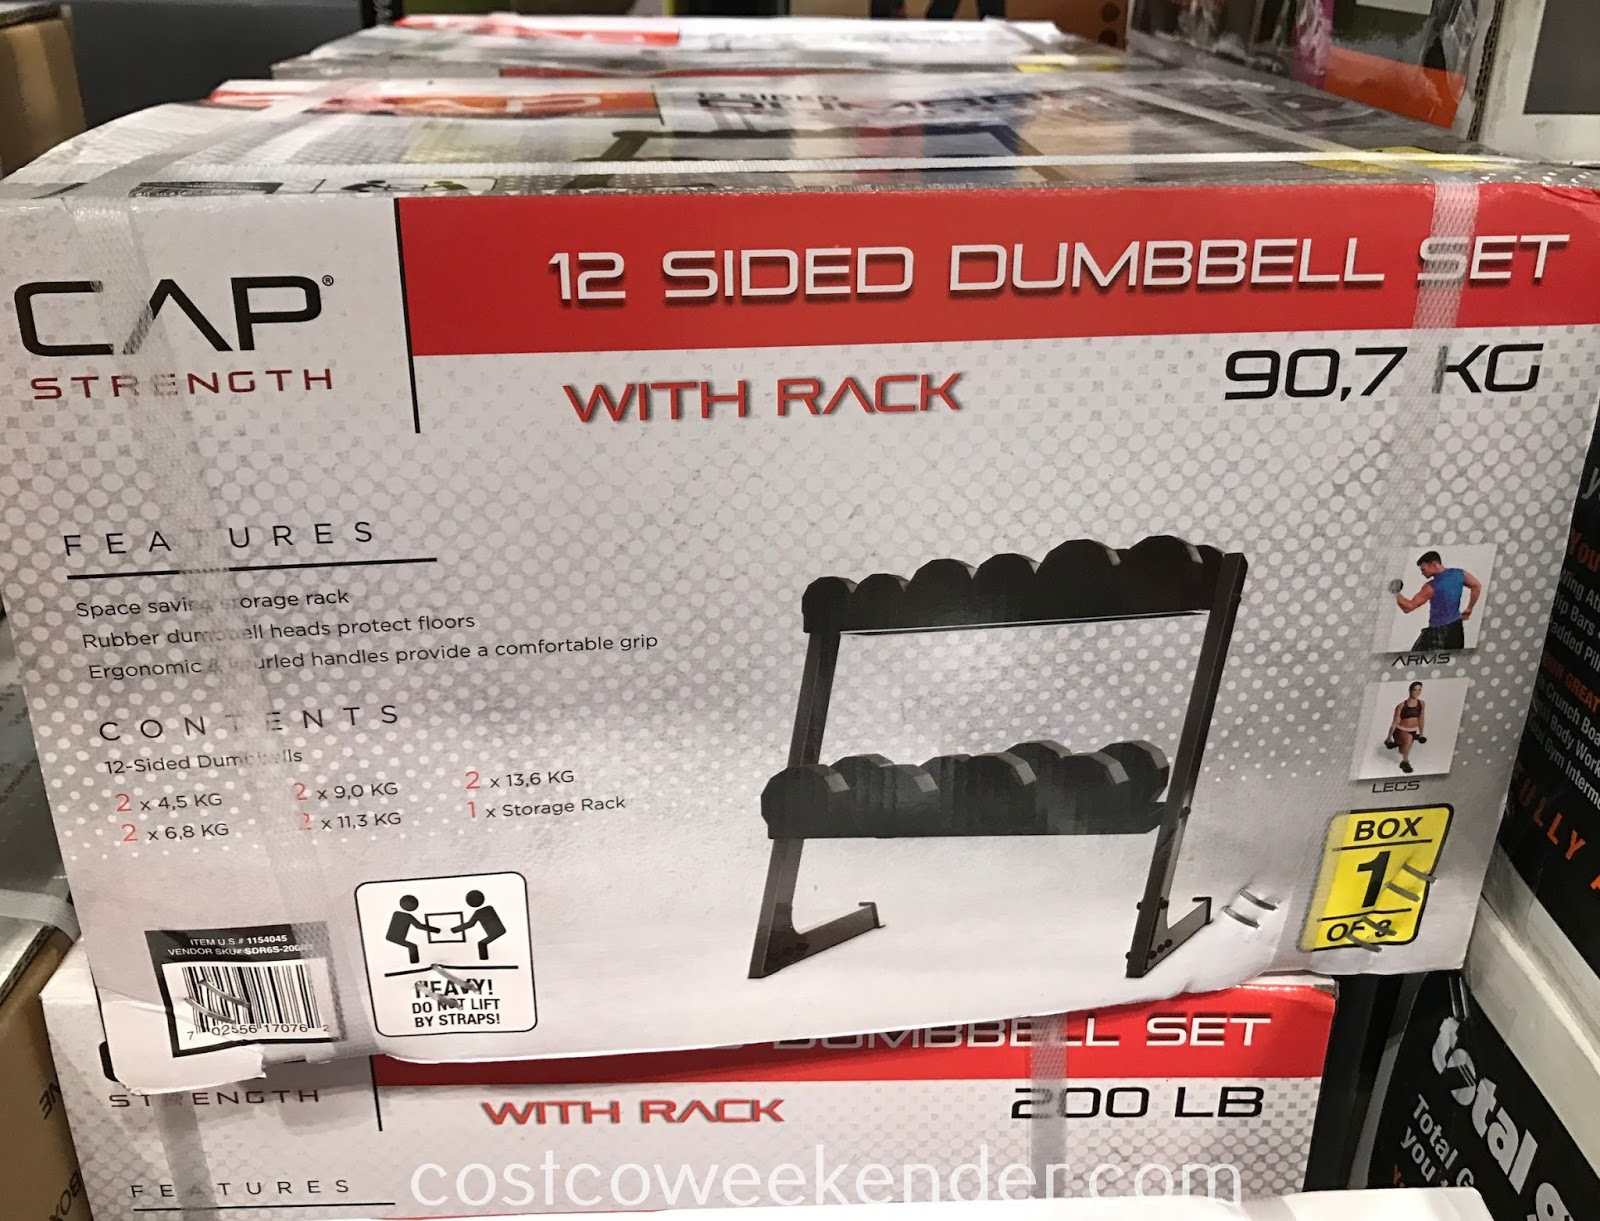 Start your home gym today with the CAP 12 Sided Dumbbell Set with Rack